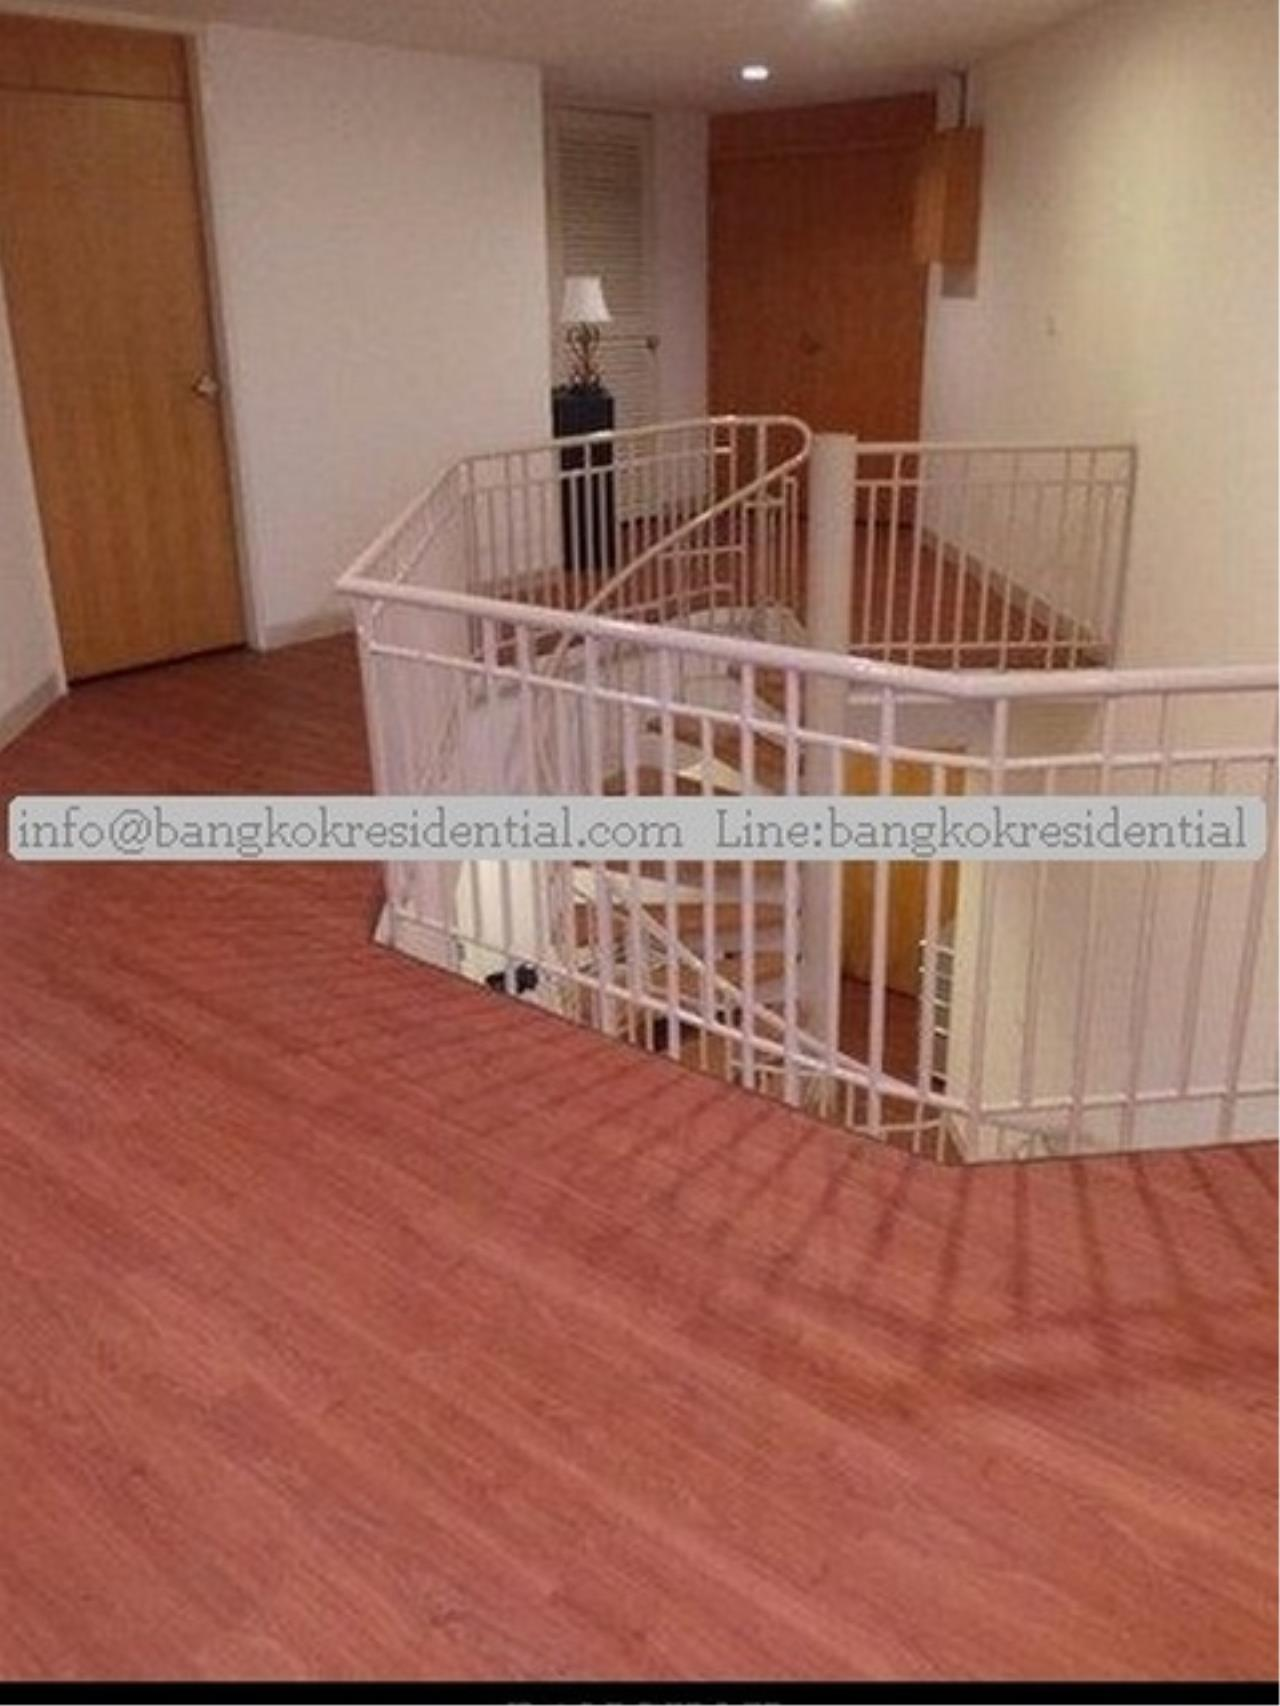 Bangkok Residential Agency's 4BR Tai Ping Tower For Sale Or Rent (BR2994CD) 7